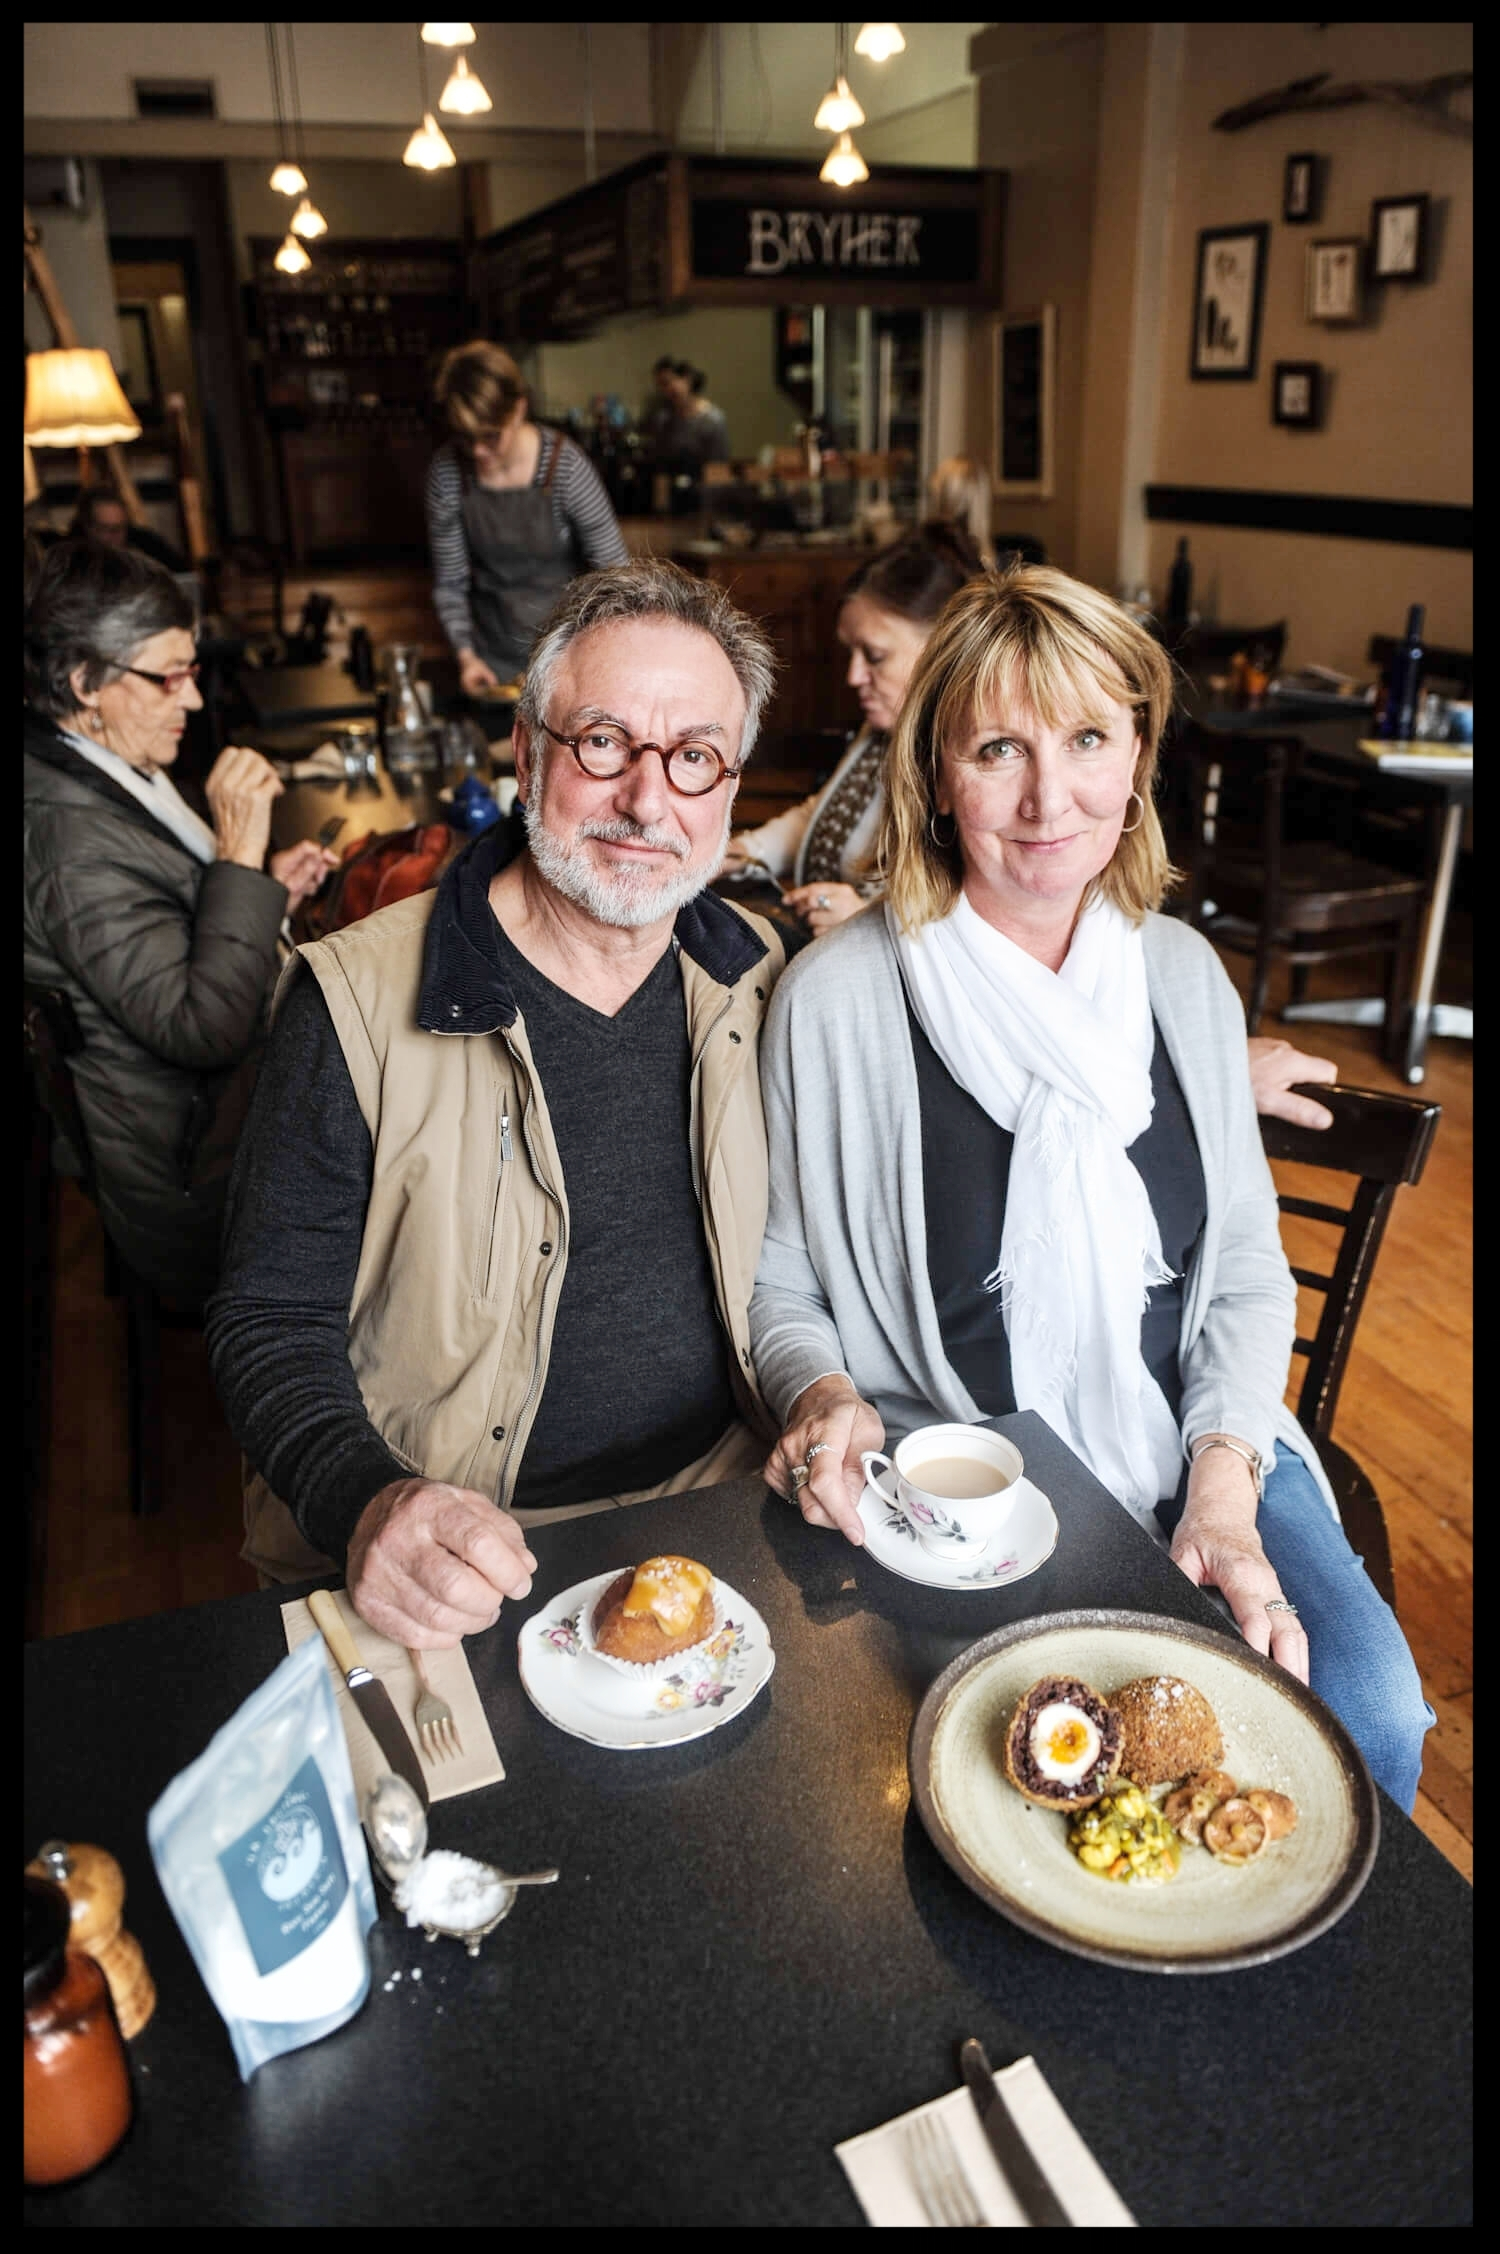 Founders of La Saliere at Bryher Cafe Launceston